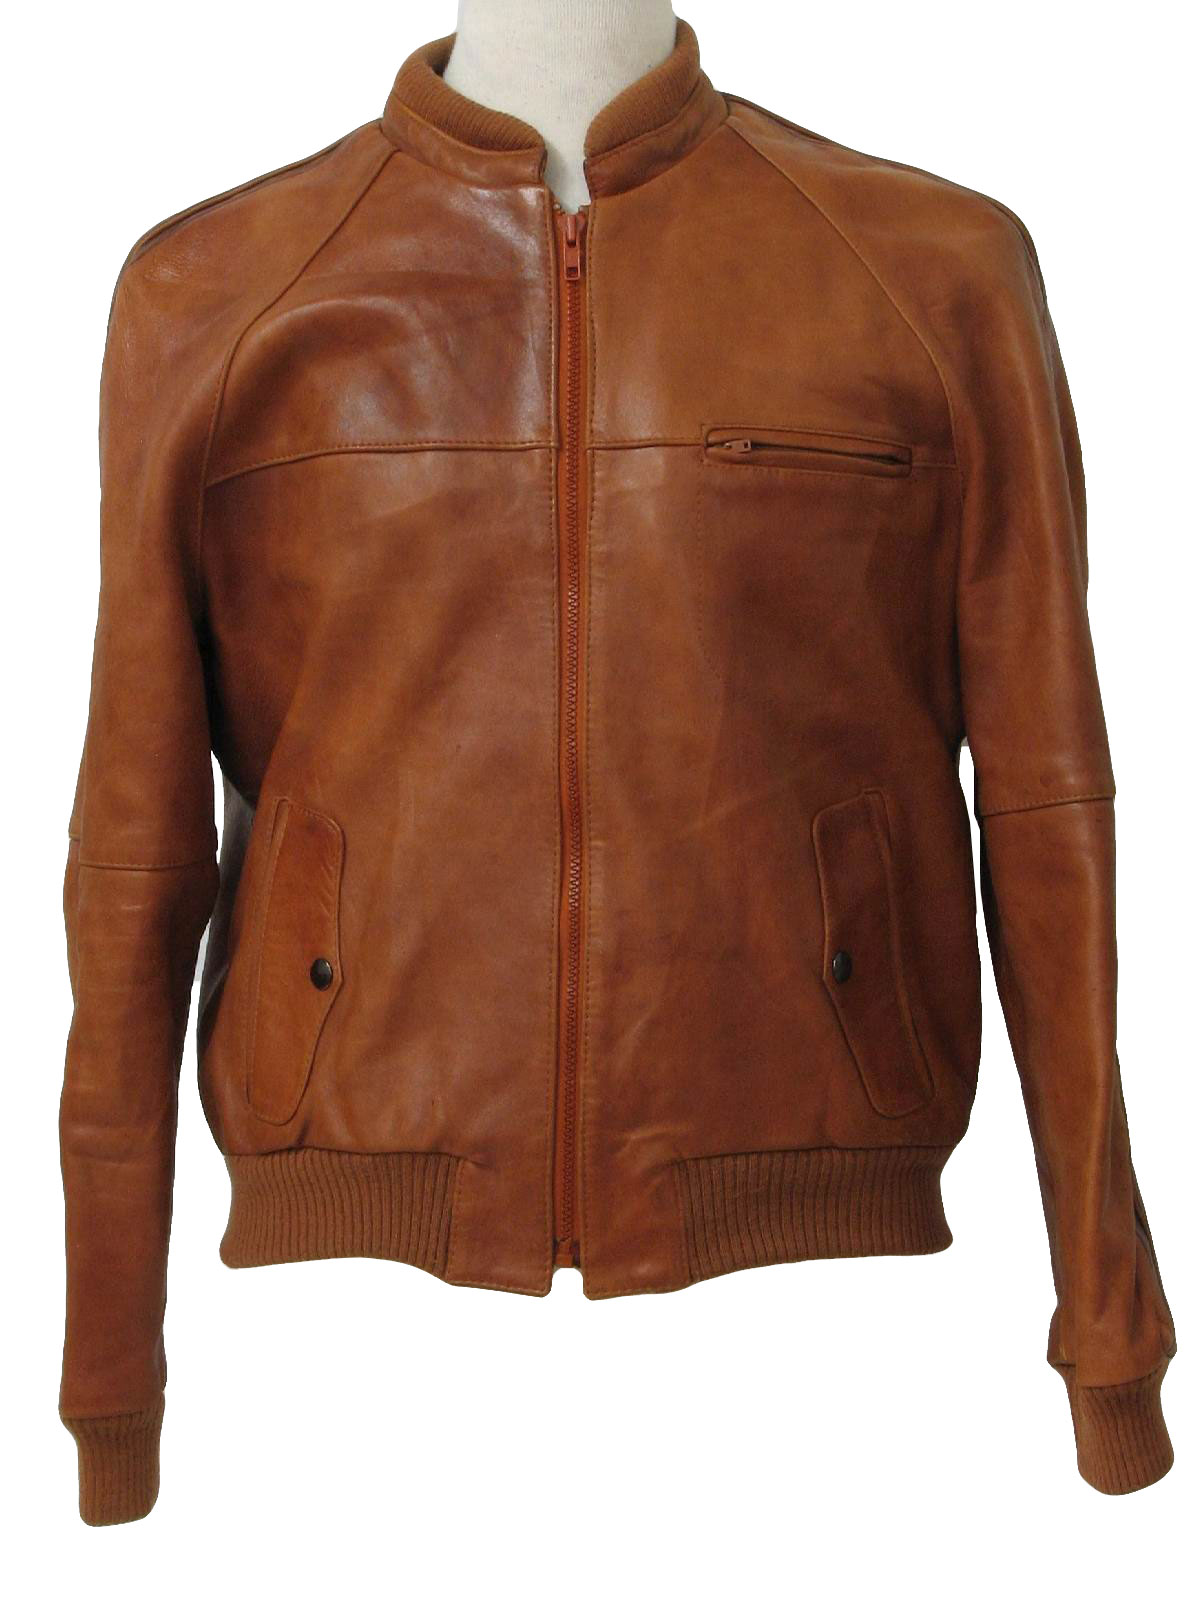 Vintage Care Label Only 1980s Leather Jacket: 80s -Care ...